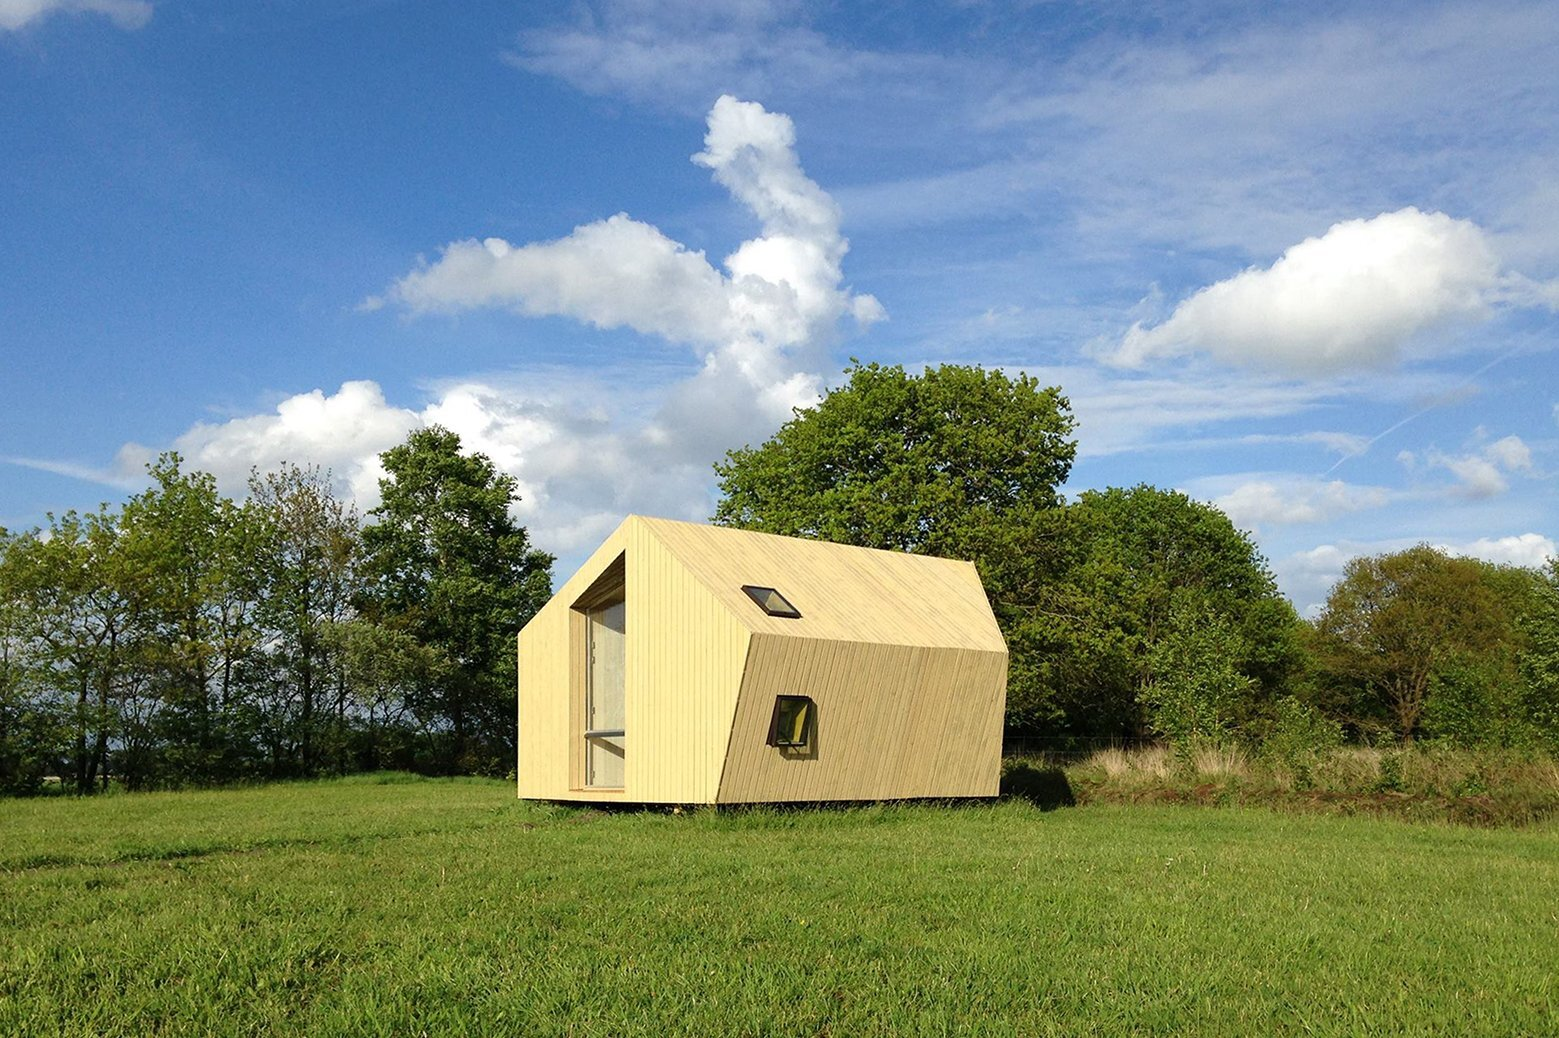 Treck-In Hickers Cabins - Small Cabin - MoodWorks Architecture - Kristel Hermans Architectuur - The Netherlands - Exterior - Humble Homes